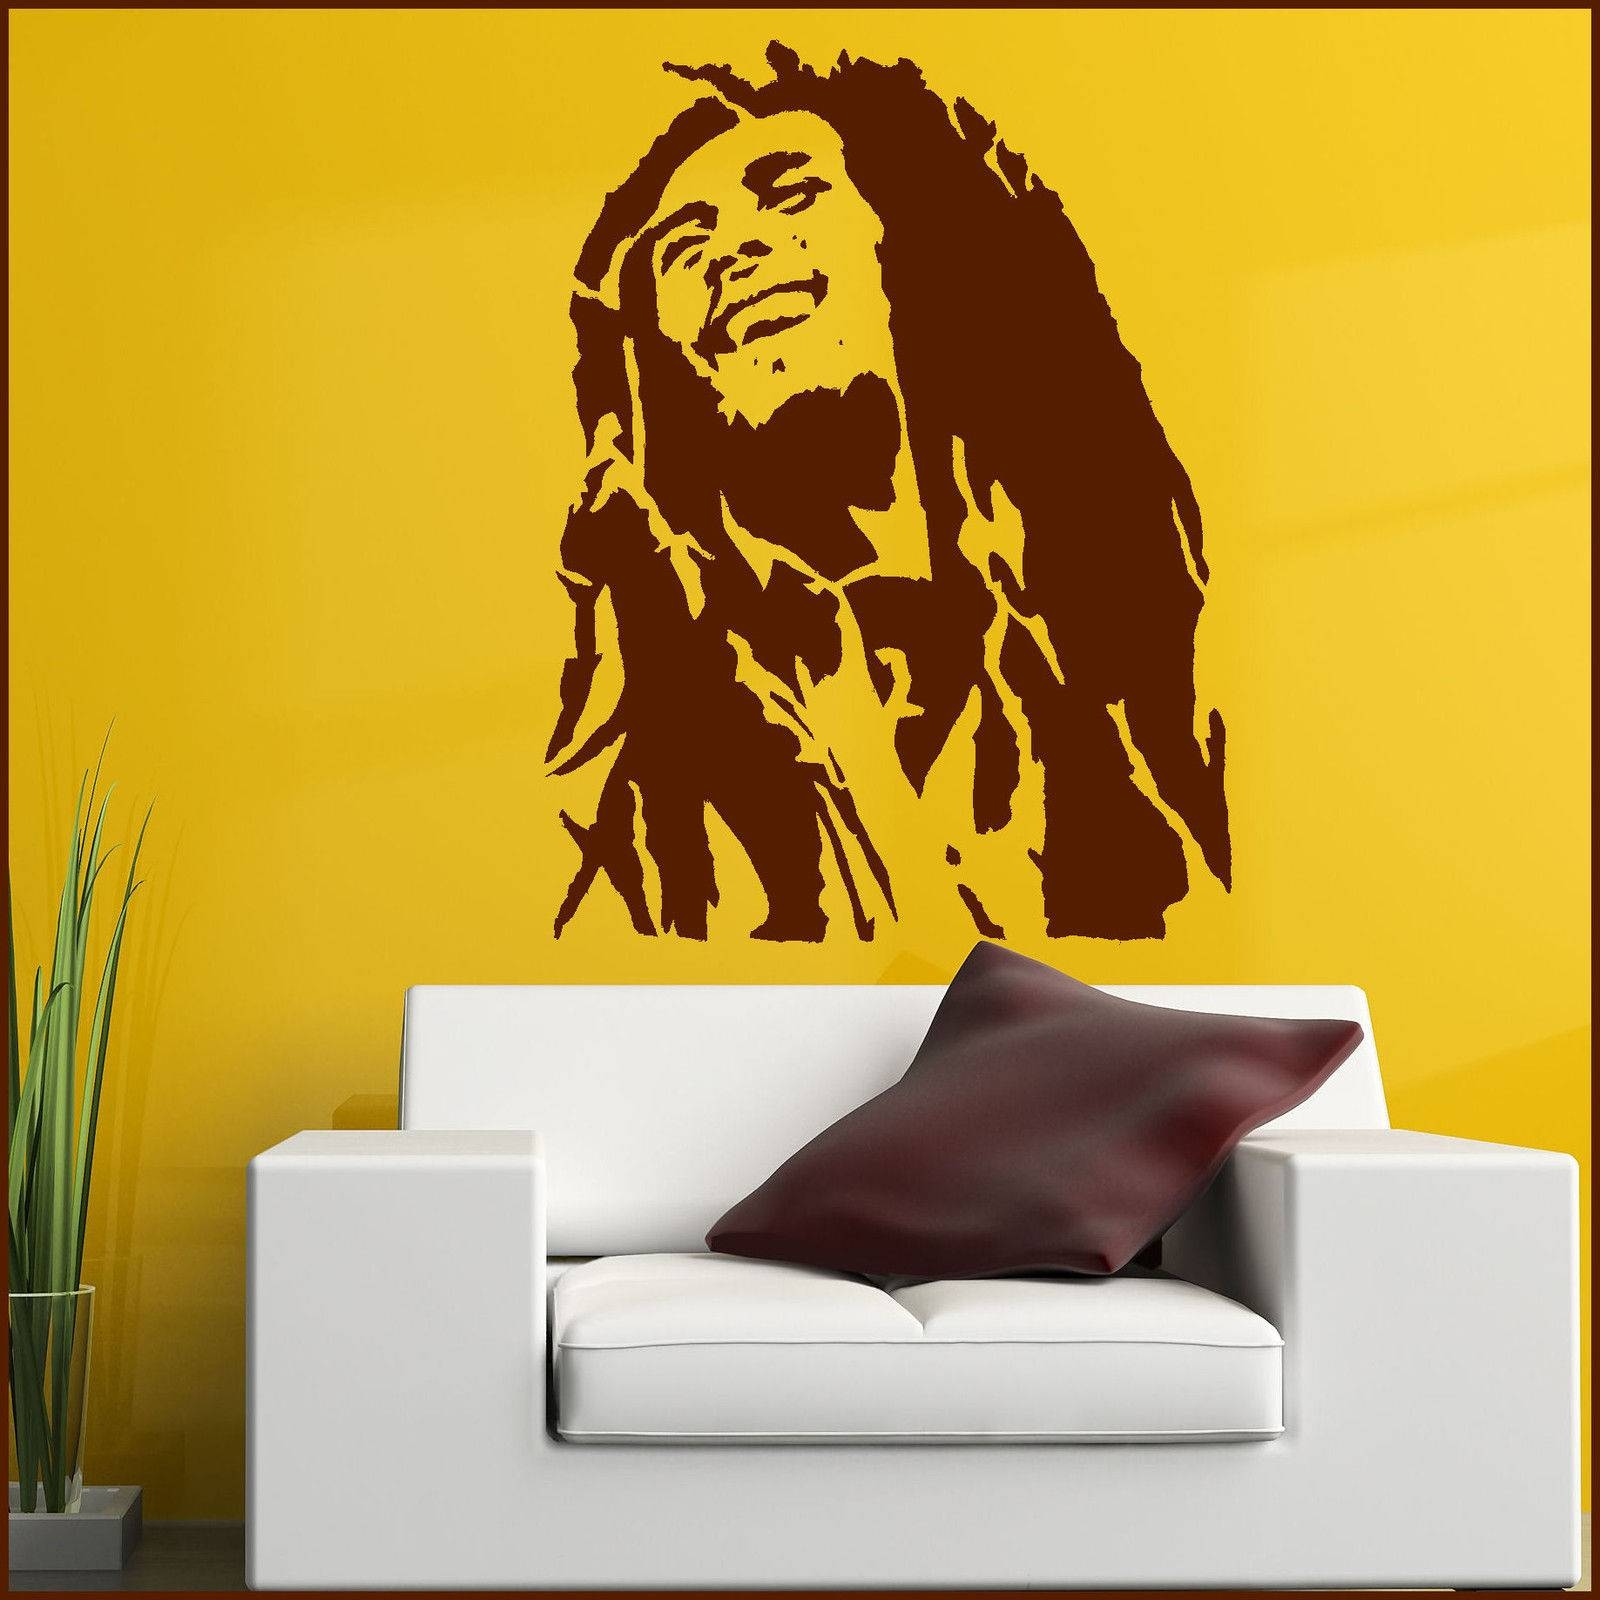 Large Bob Marley Wall Art Sticker In Matt Vinyl Decal Transfer Xl For 2018 Bob Marley Wall Art (View 24 of 30)